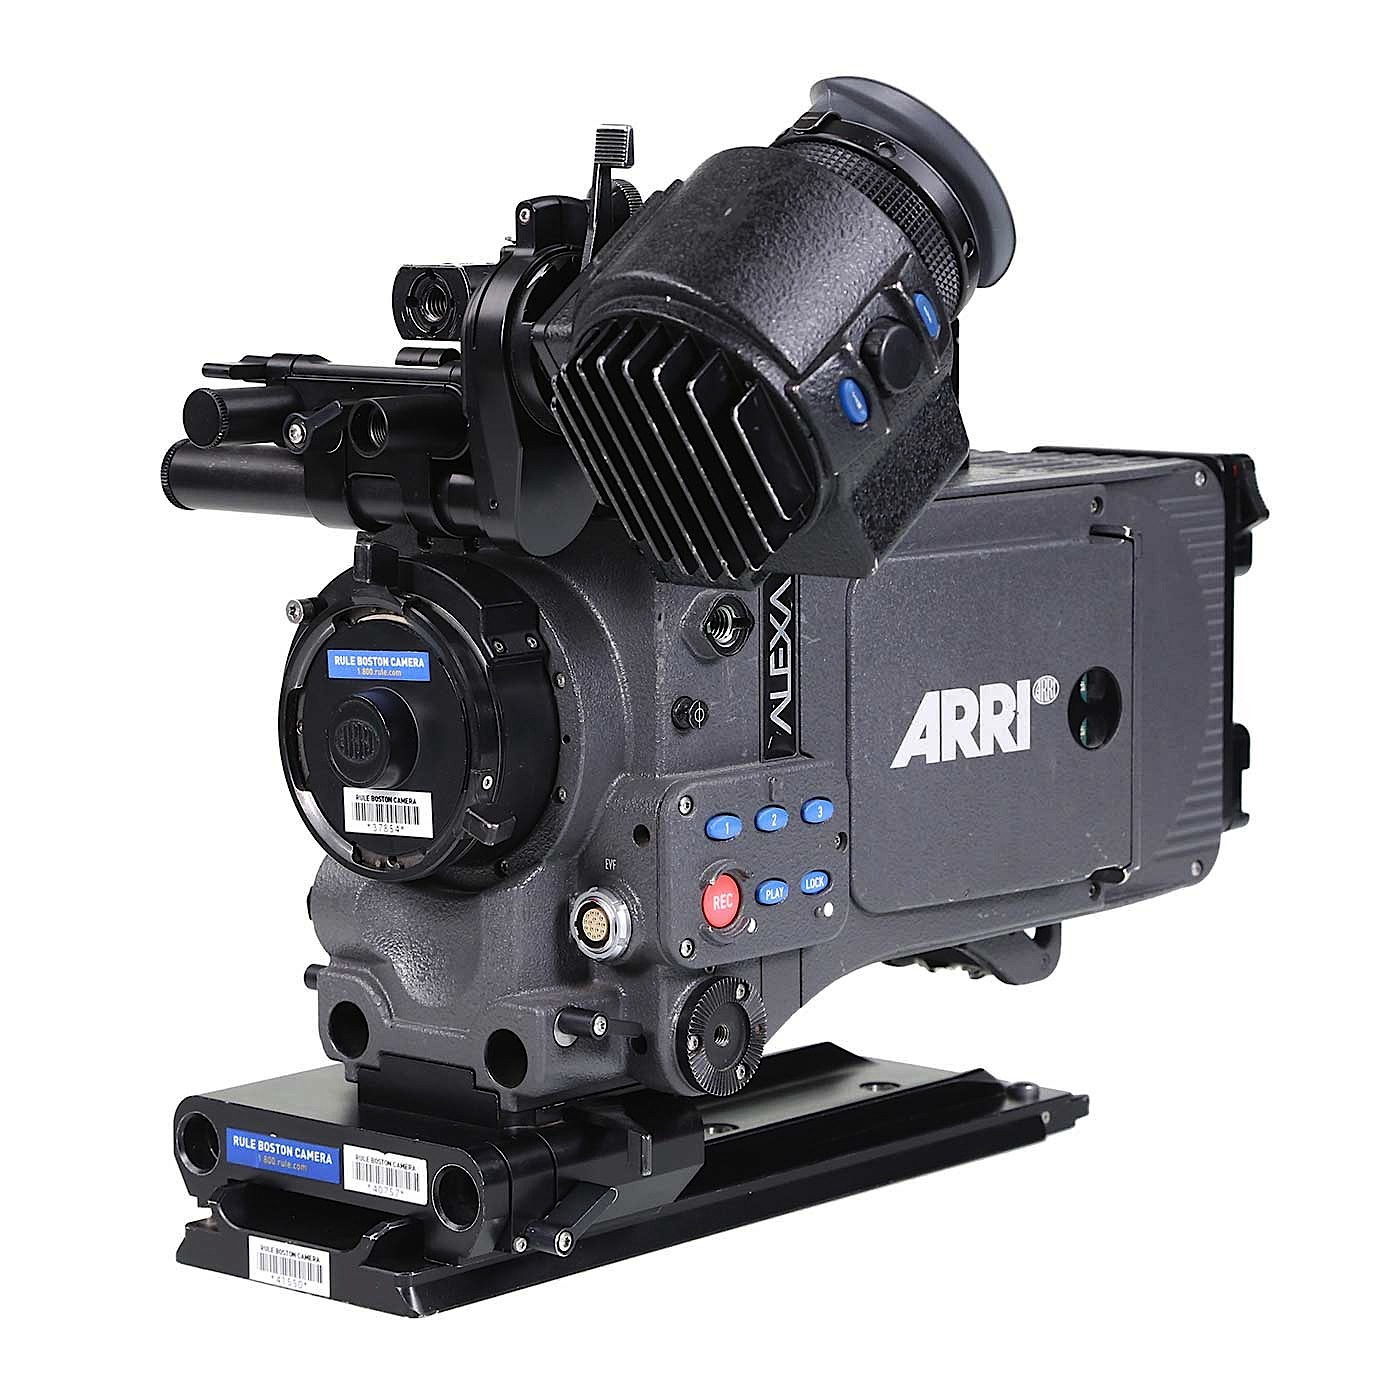 Arri alexa plus 35mm digital camera rule camera for Camera camera